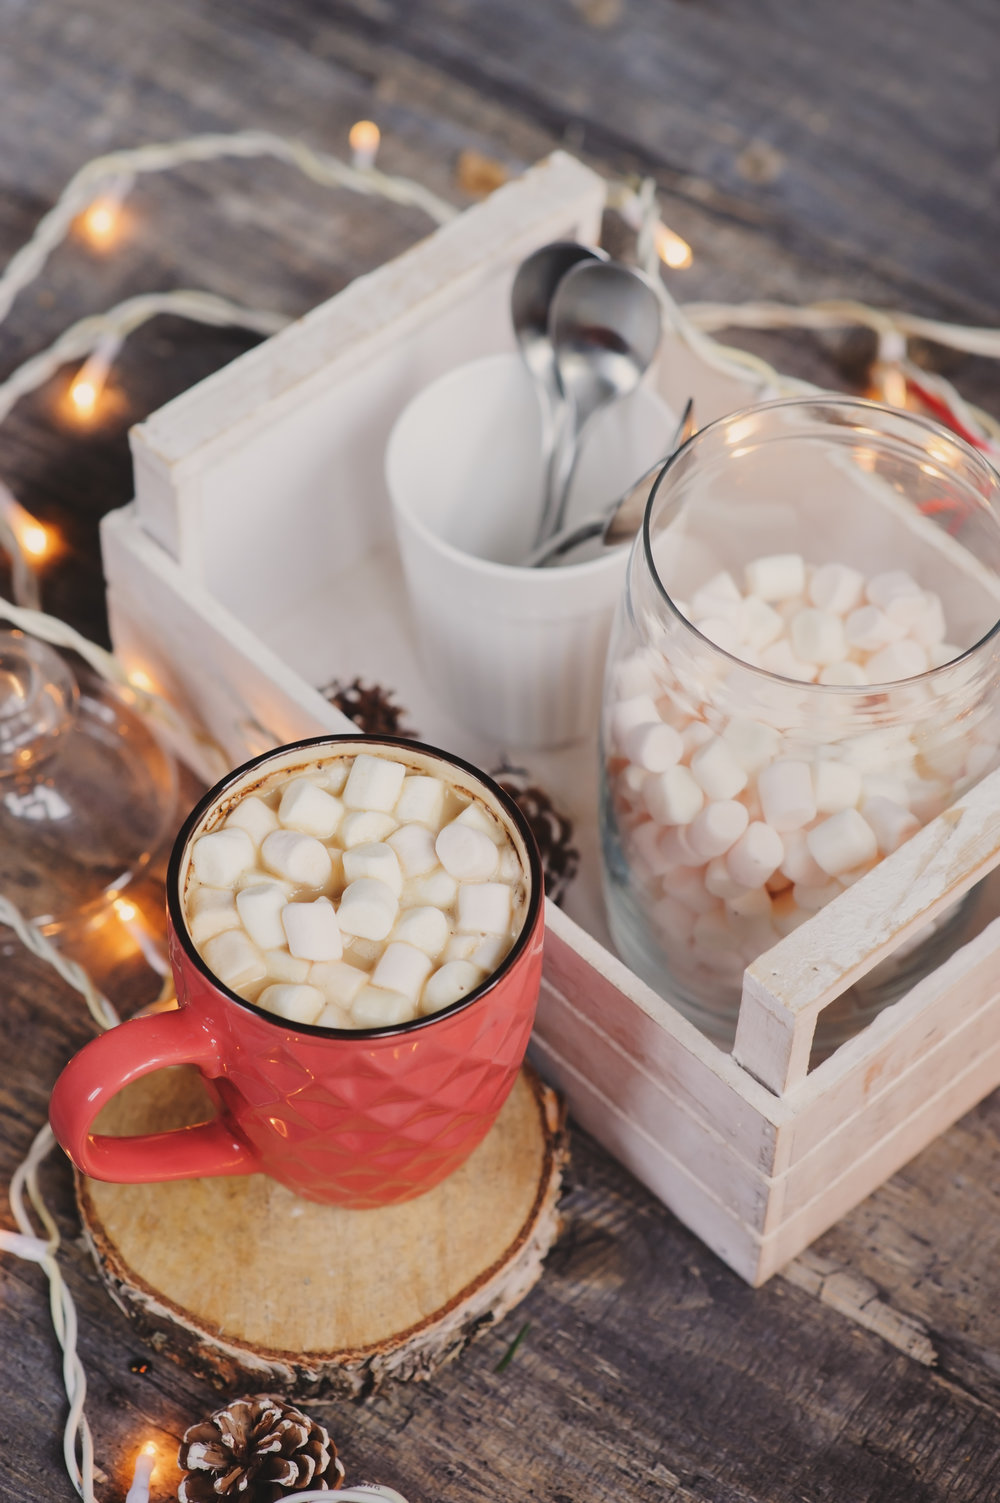 bigstock-Hot-Cocoa-With-Marshmallows-On-265555705.jpg